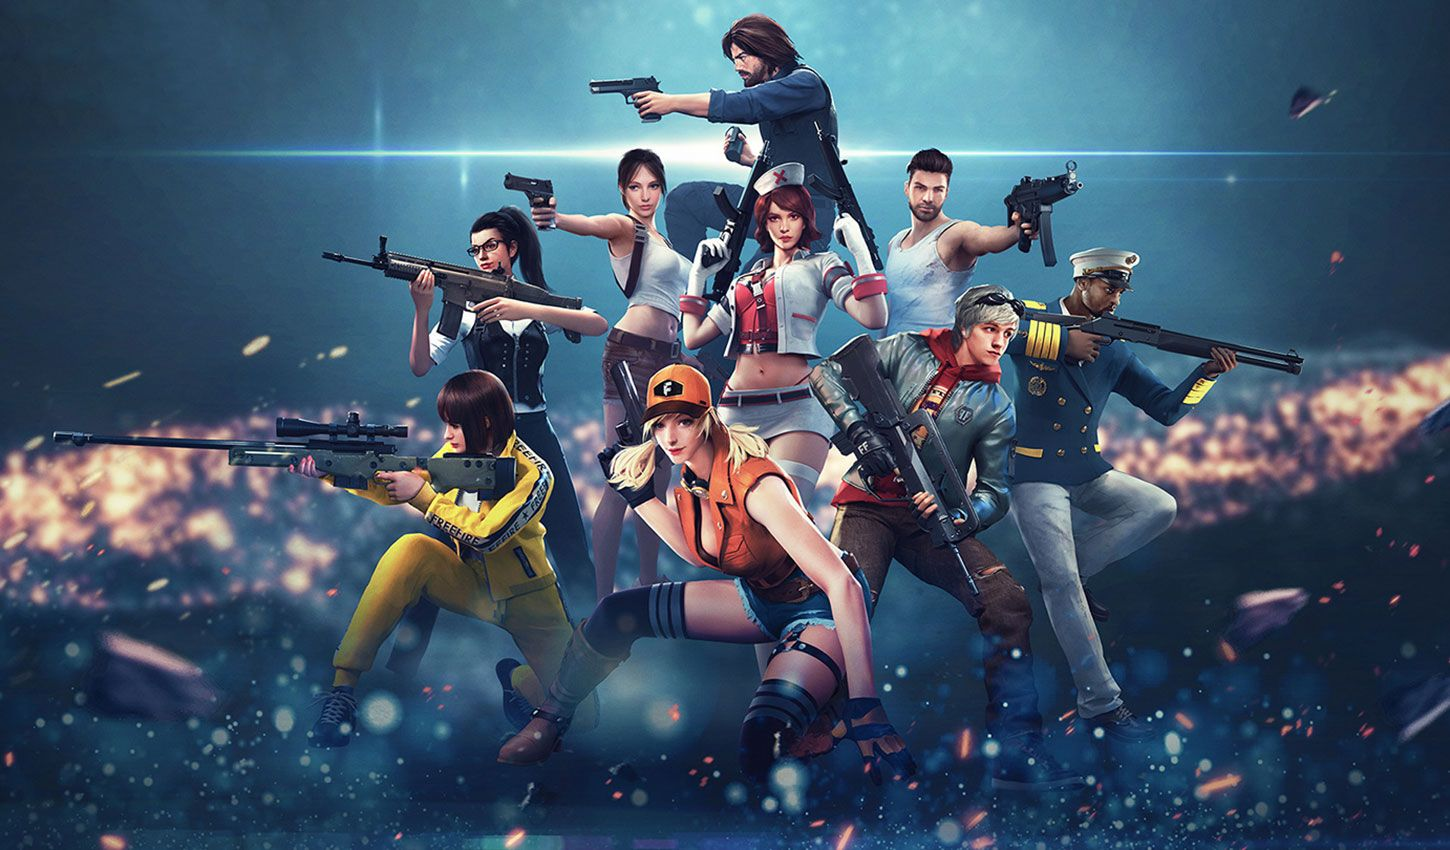 Garena Free Fire Posts Record Quarter With 90 Million In Spending 73 Million New Players Fire Image Diamond Free Free Games